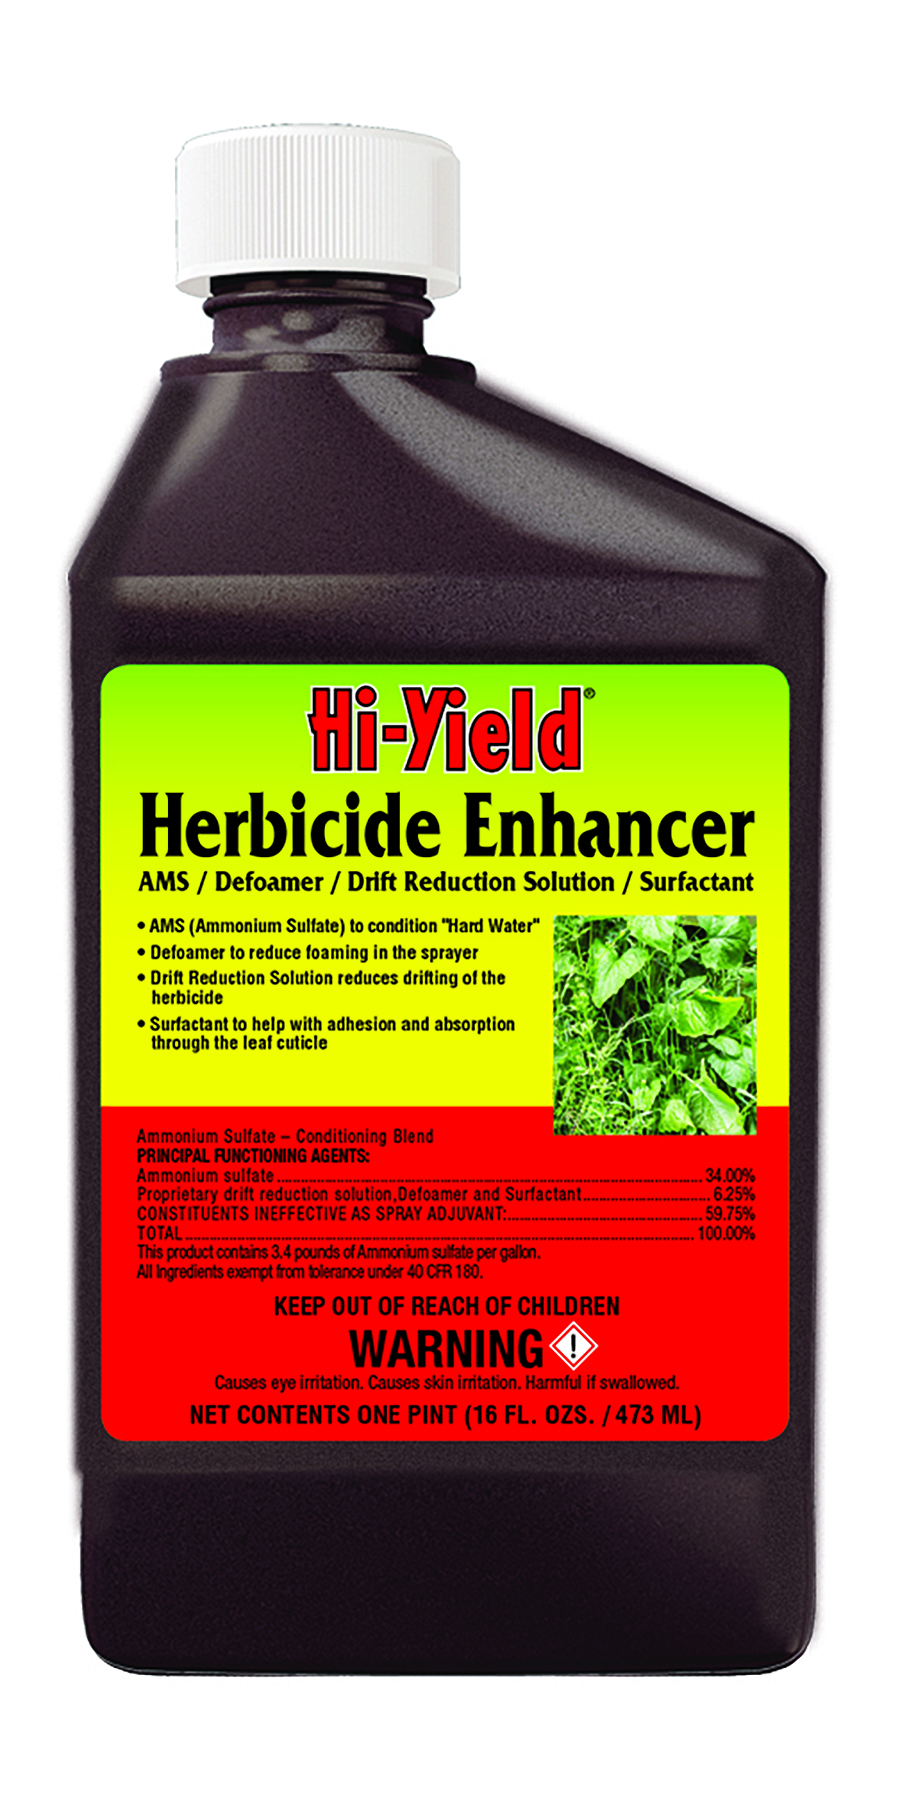 VPG Hi-Yield Herbicide Enhancer